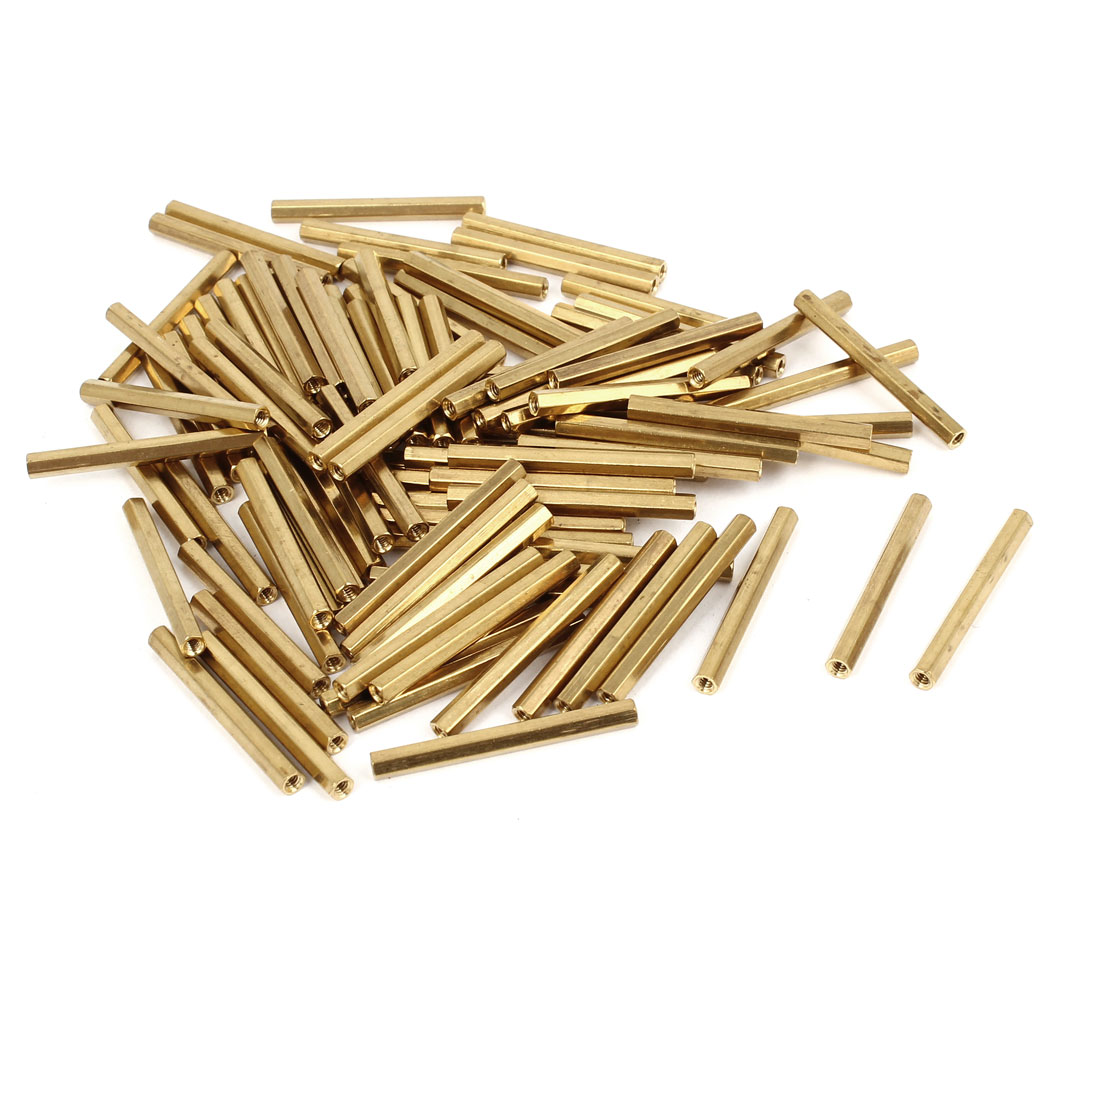 100 Pcs M2 Female Thread Brass Pillar Standoff Hexagonal Spacer 30mm Length